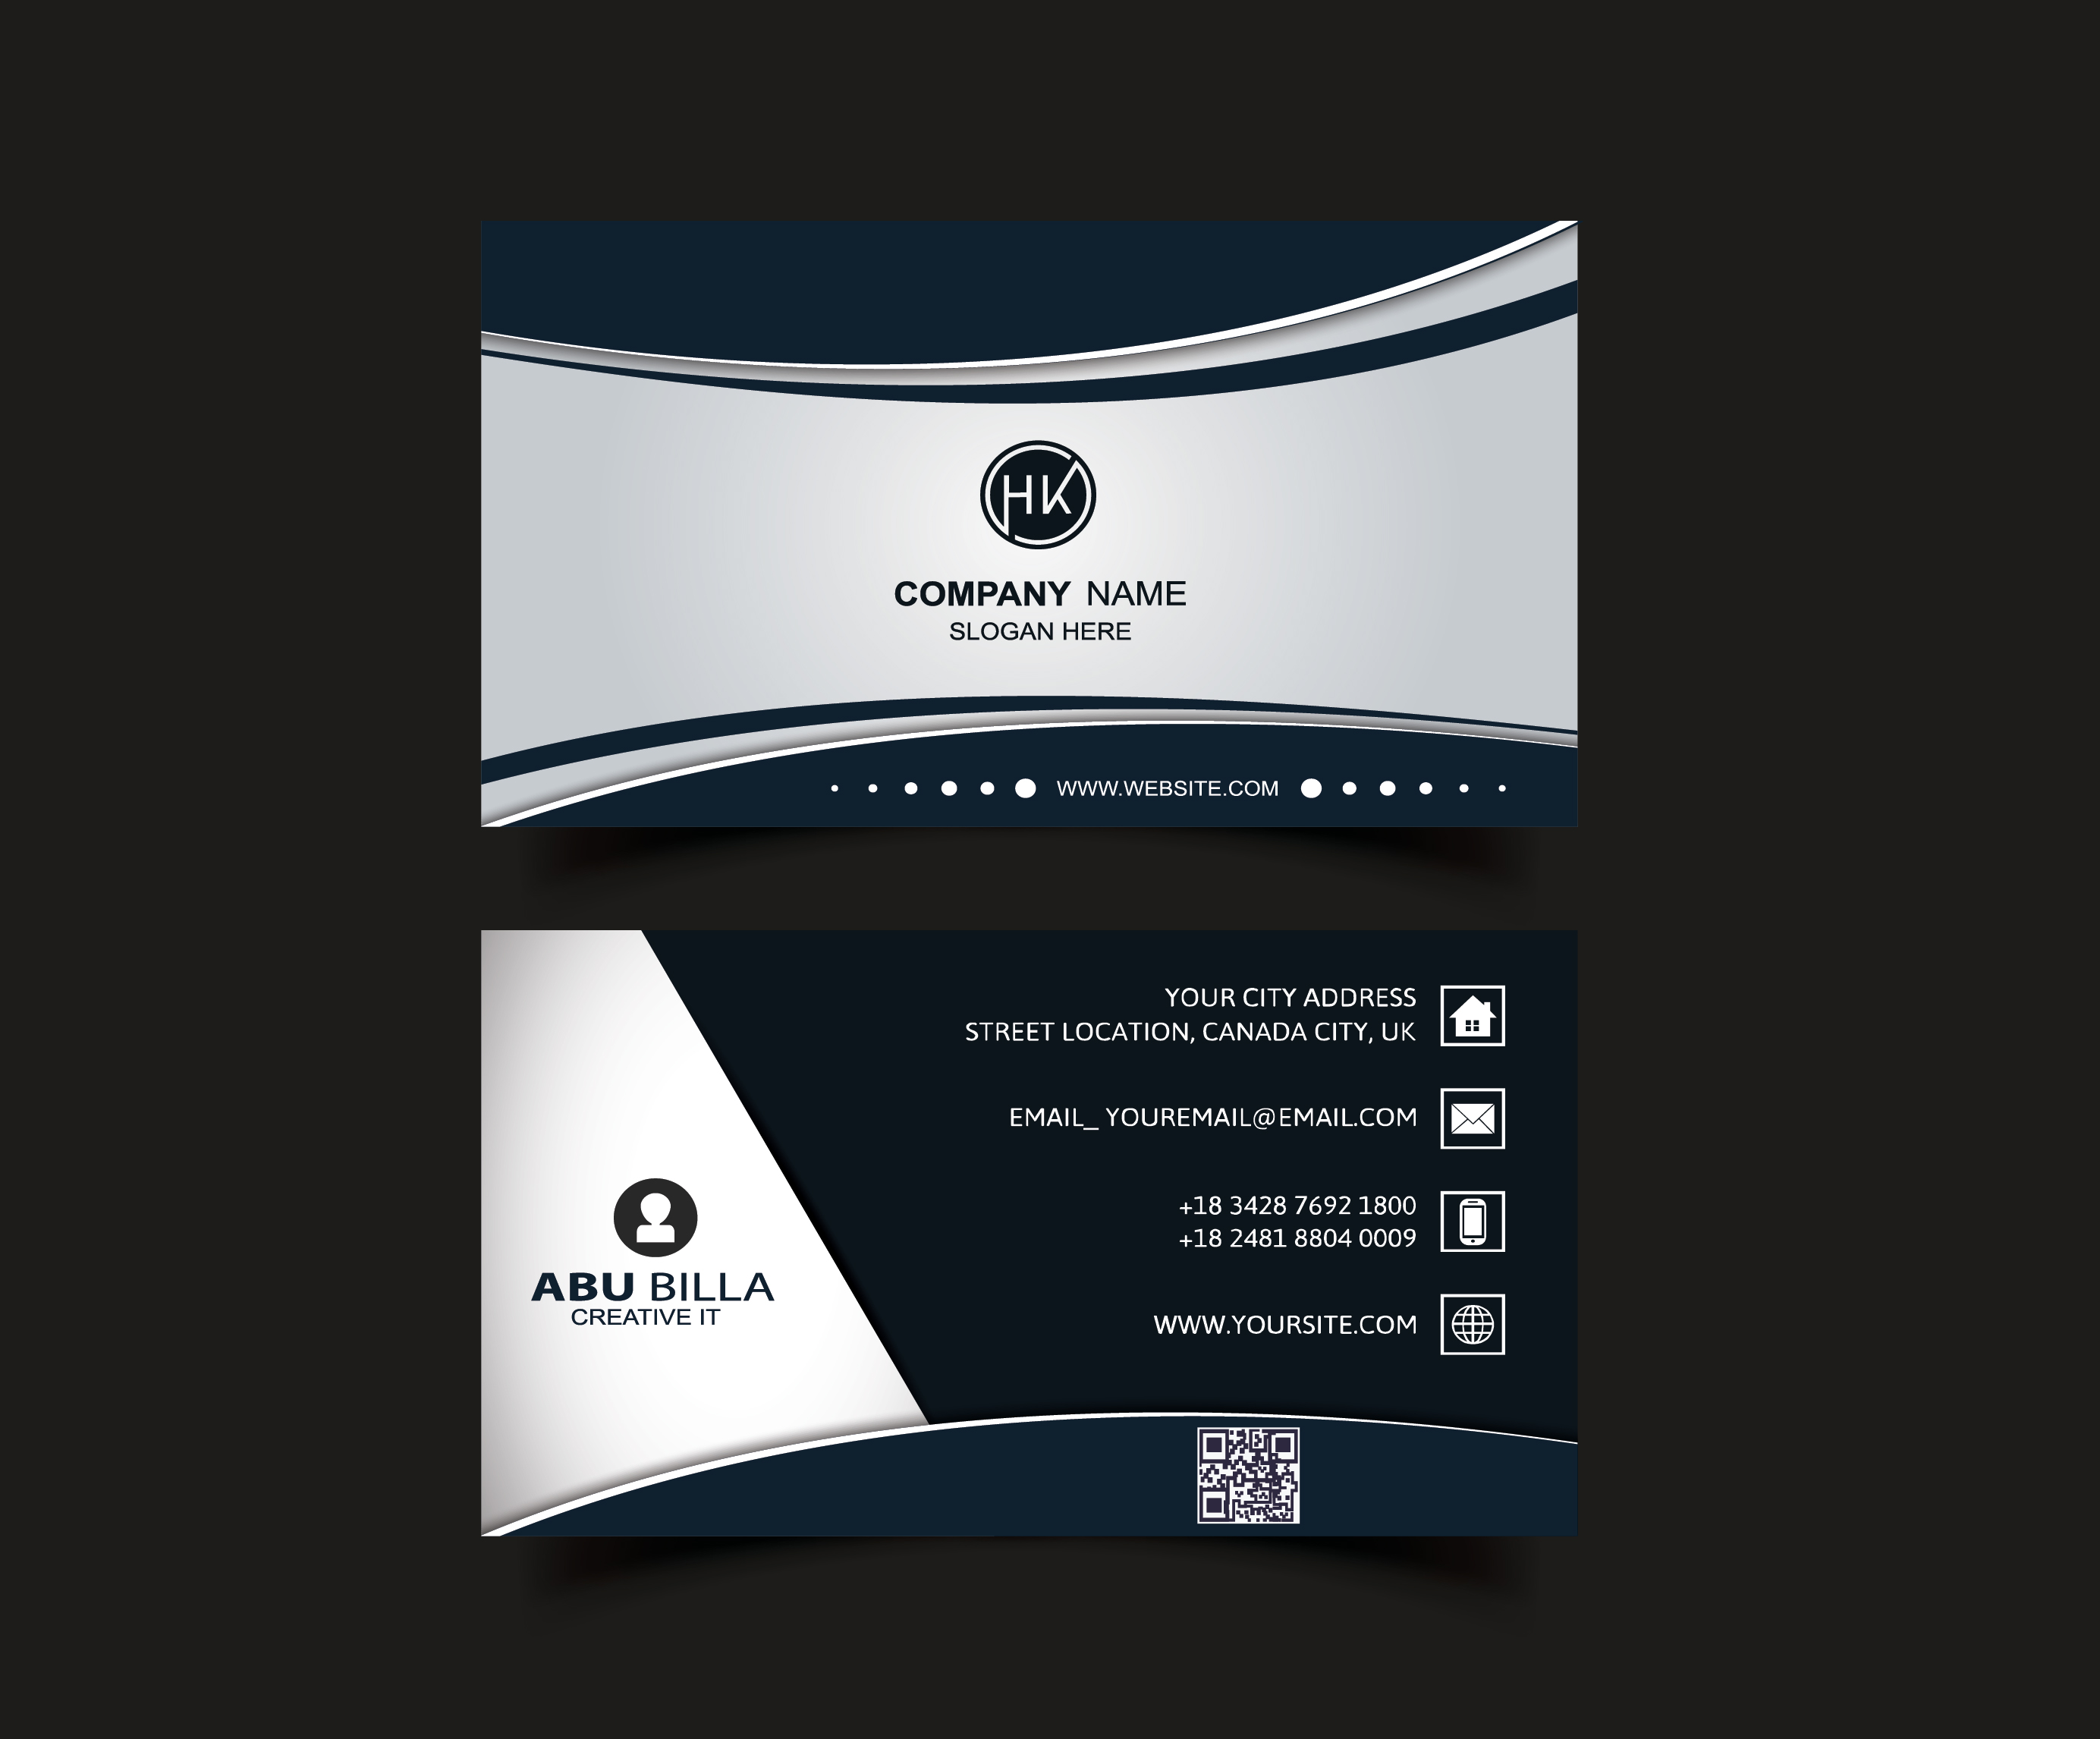 Design professional 2 sided business card + unlimited Revisions